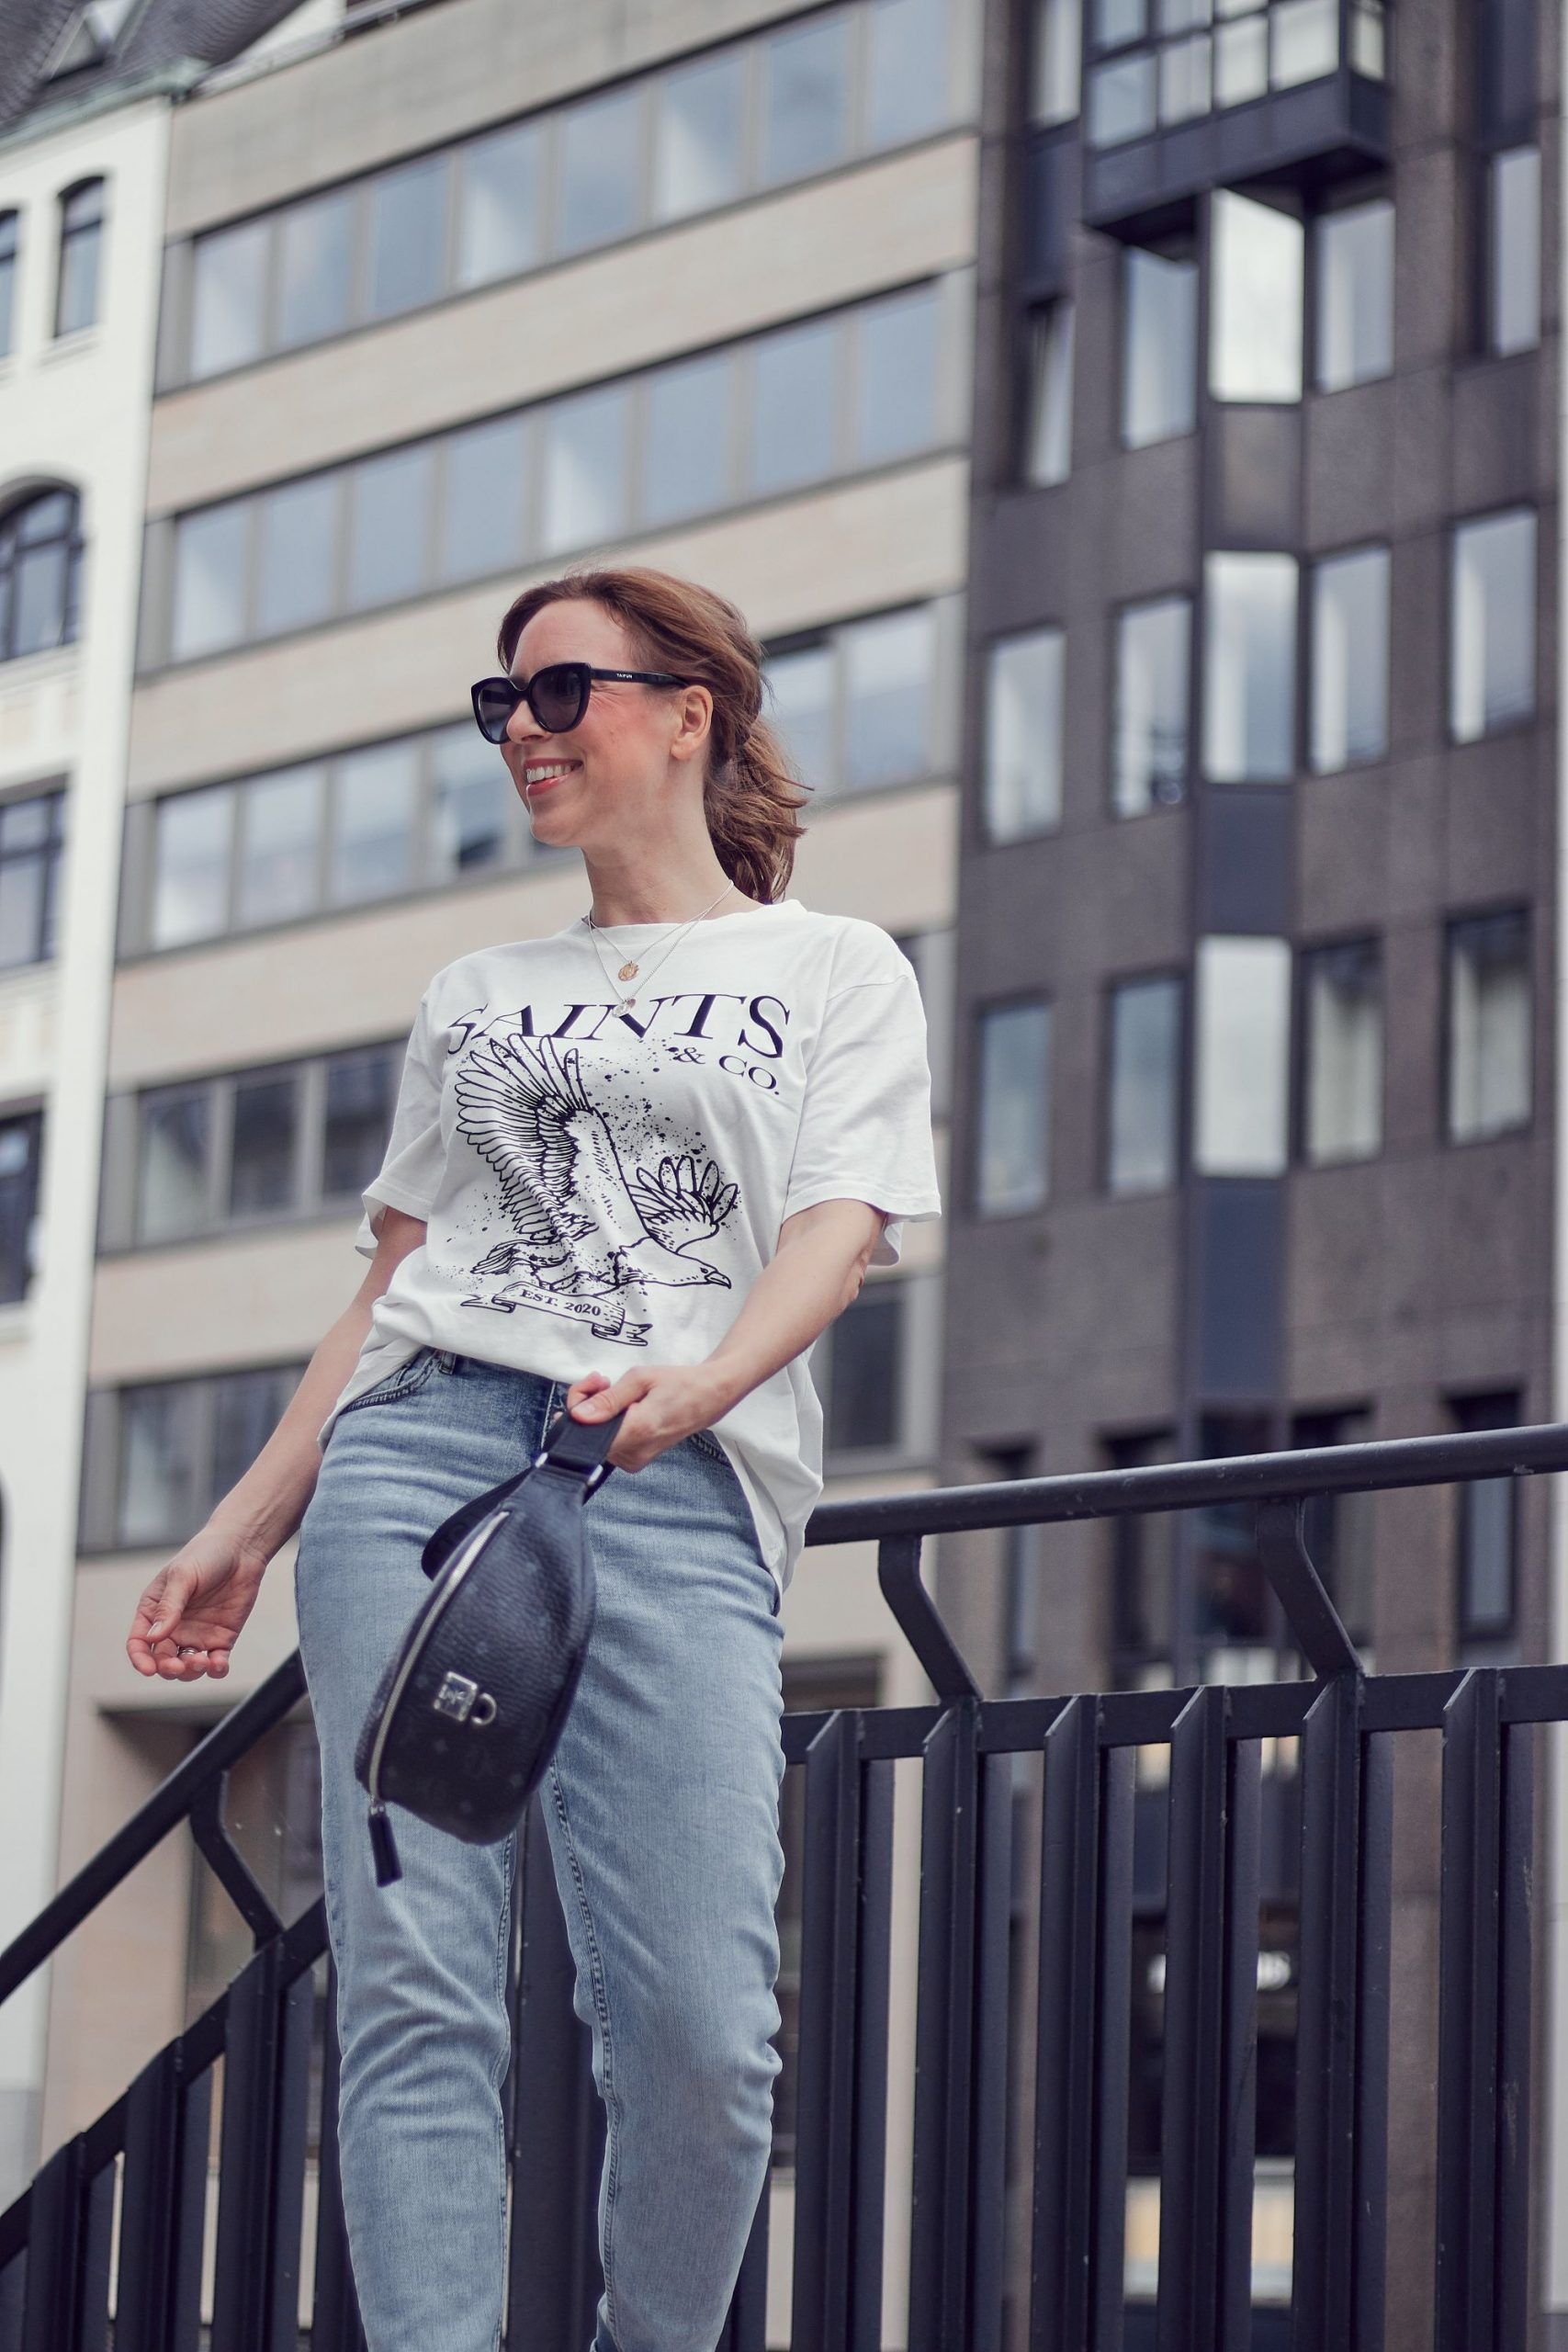 Saints and Co Off-White T-Shirt zu Mom Jeans mit Gürteltasche